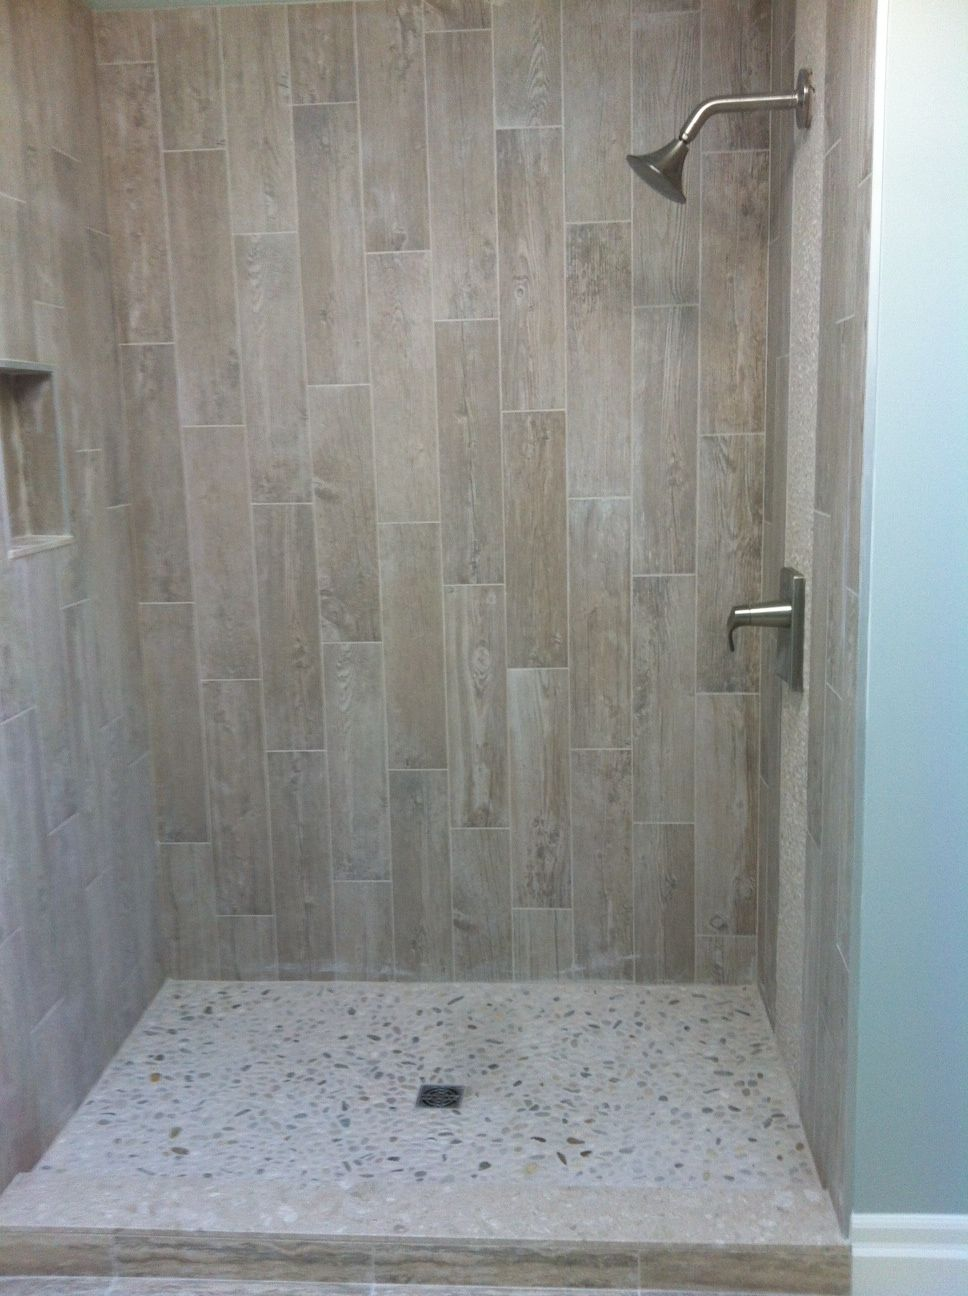 Wood Grain Tile With River Rock Wood Tile Shower Bathroom